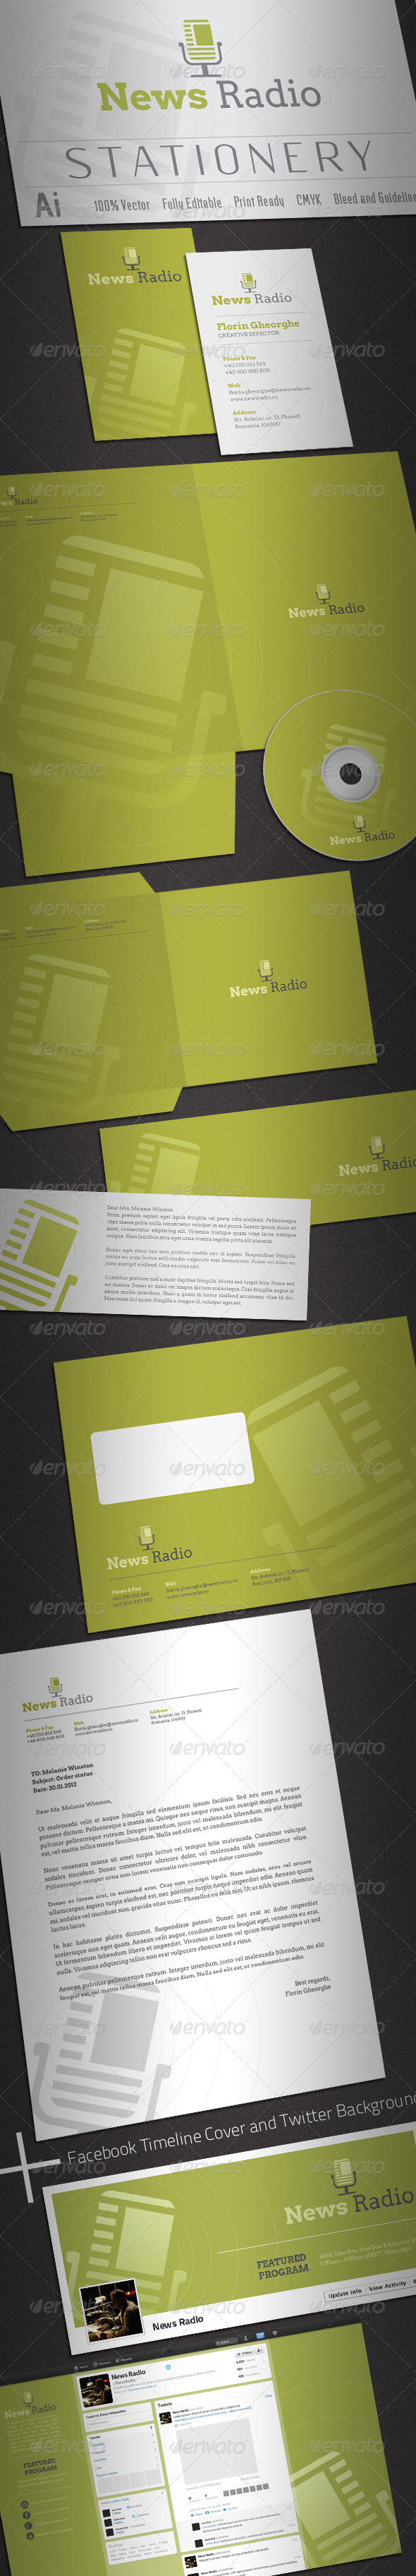 News Radio Stationery - Stationery Print Templates